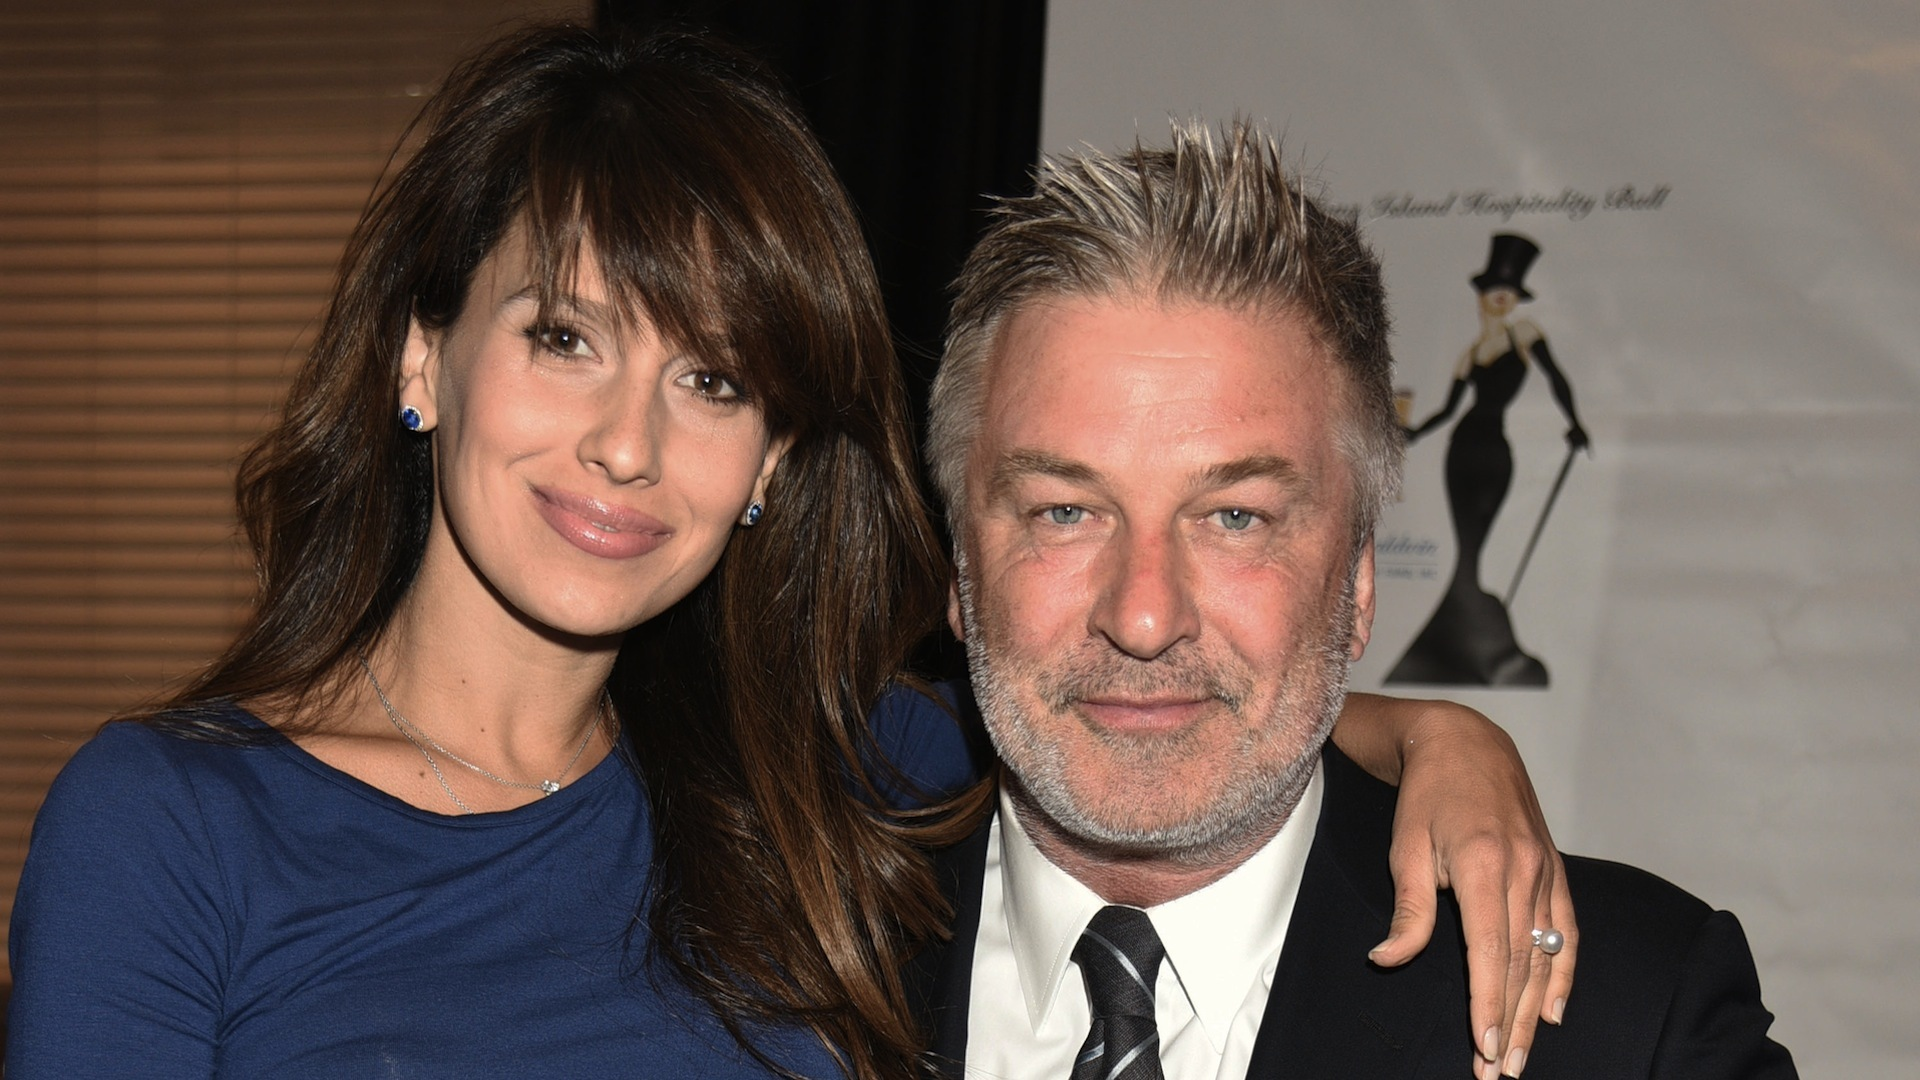 Alec Baldwin And Wife Hilaria Welcome Their Third Child!